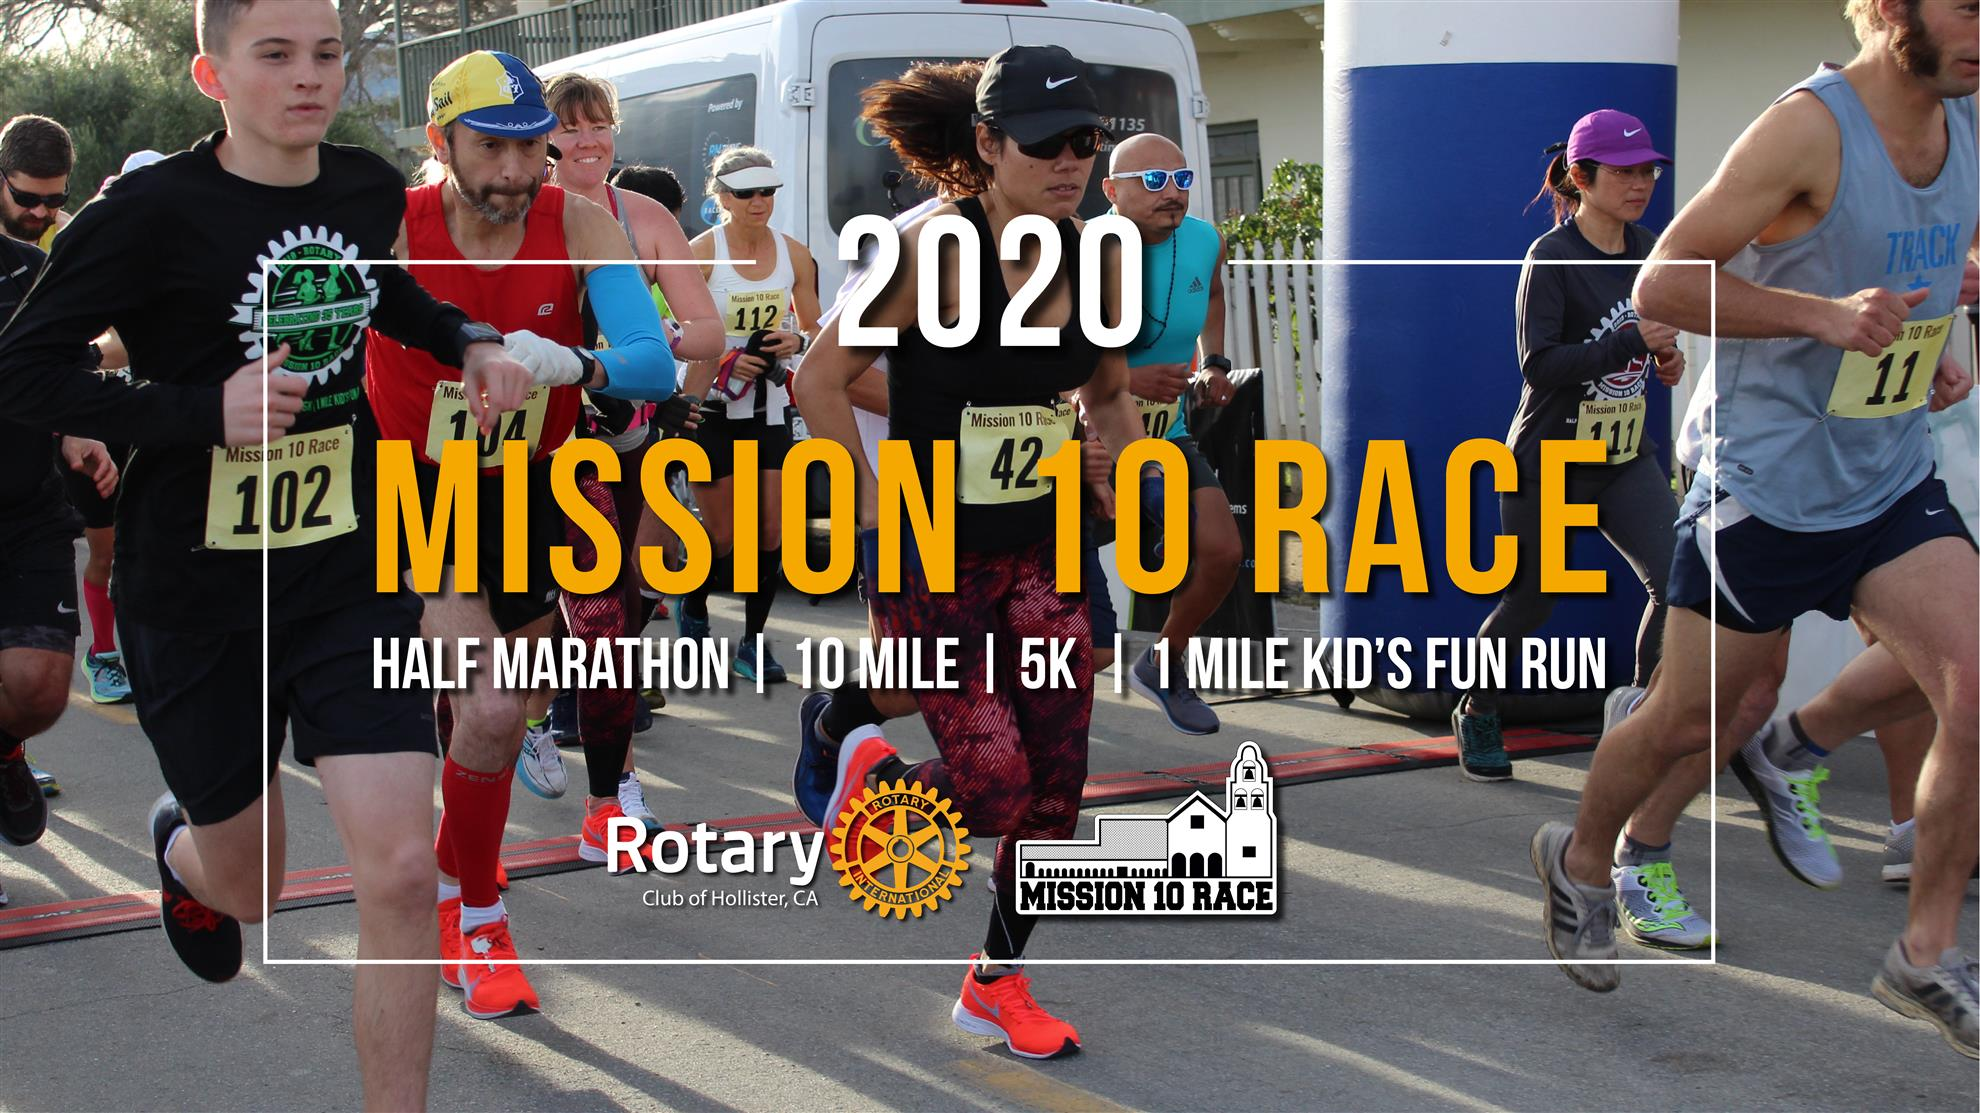 c6efa1ff5492f The 37th Annual Mission 10 Race is set for Saturday, January 25, 2020 in  beautiful and historic San Juan Bautista, CA.